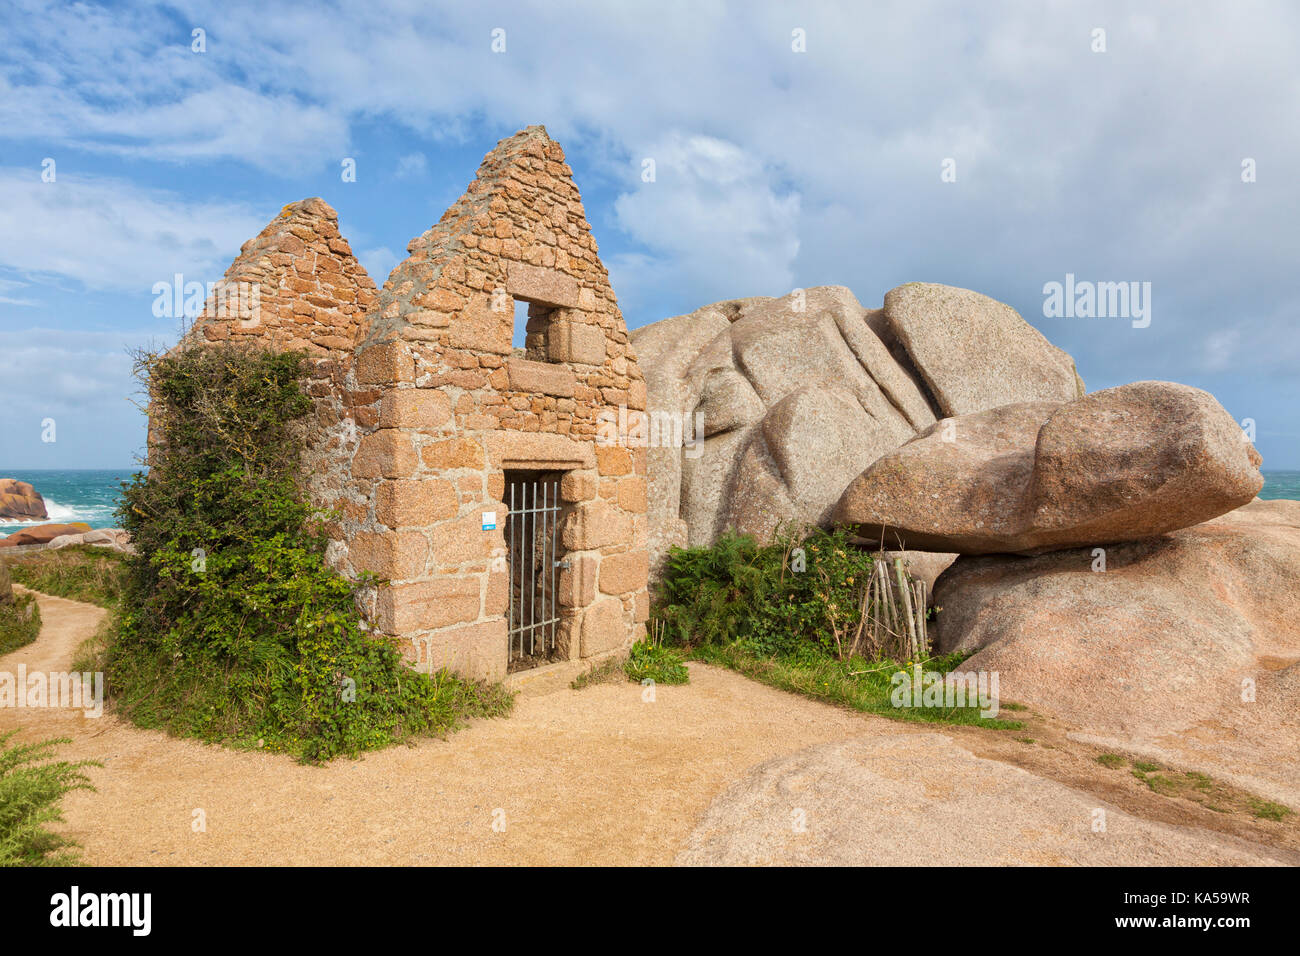 Ruins of the old gun powder store or Poudrière at Ploumanac'h site, Perros-Guirec, Brittany, France - Stock Image